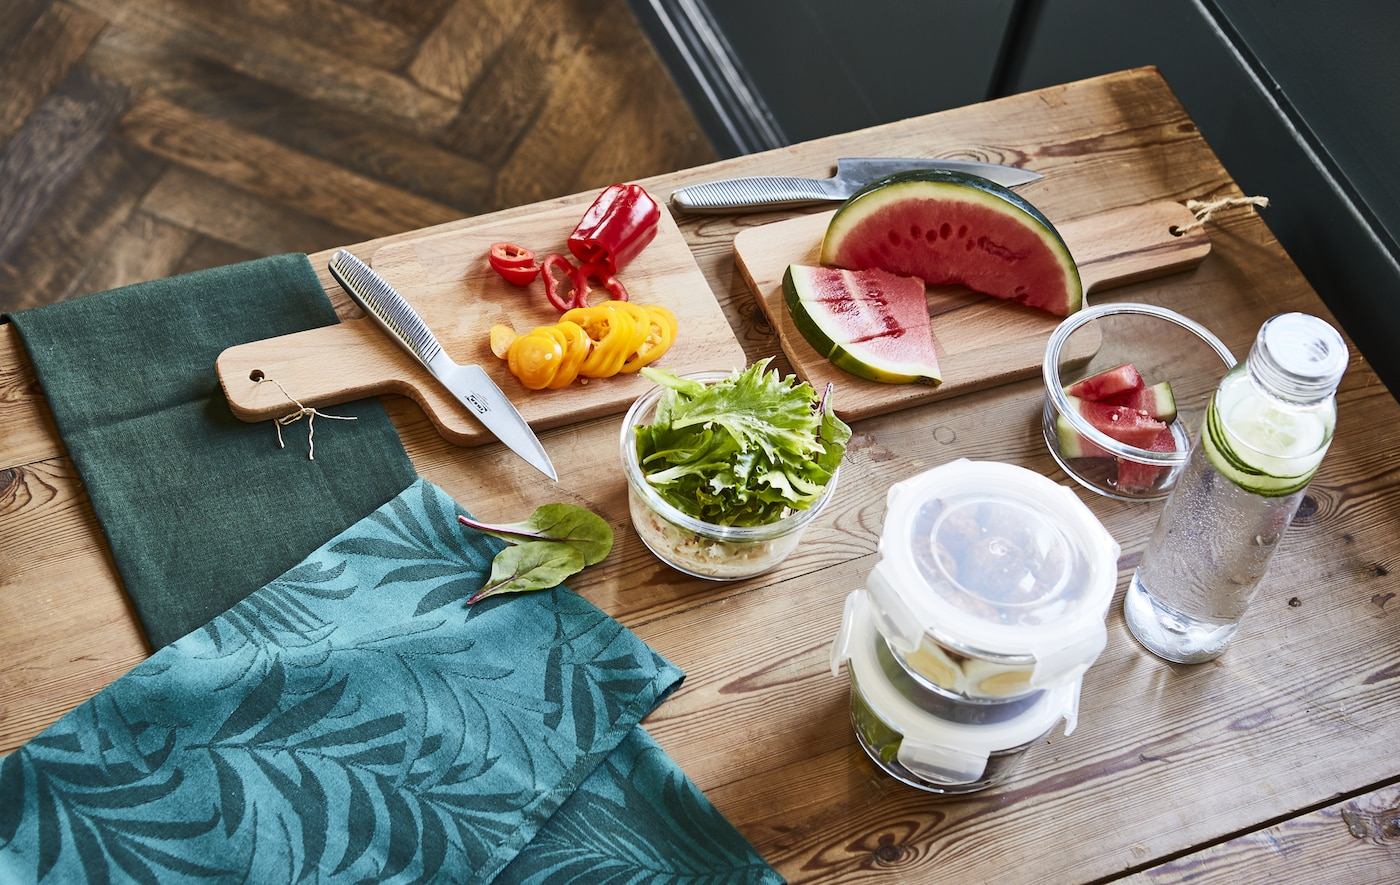 Pack your lunch in stylish glass containers for a more special feel.